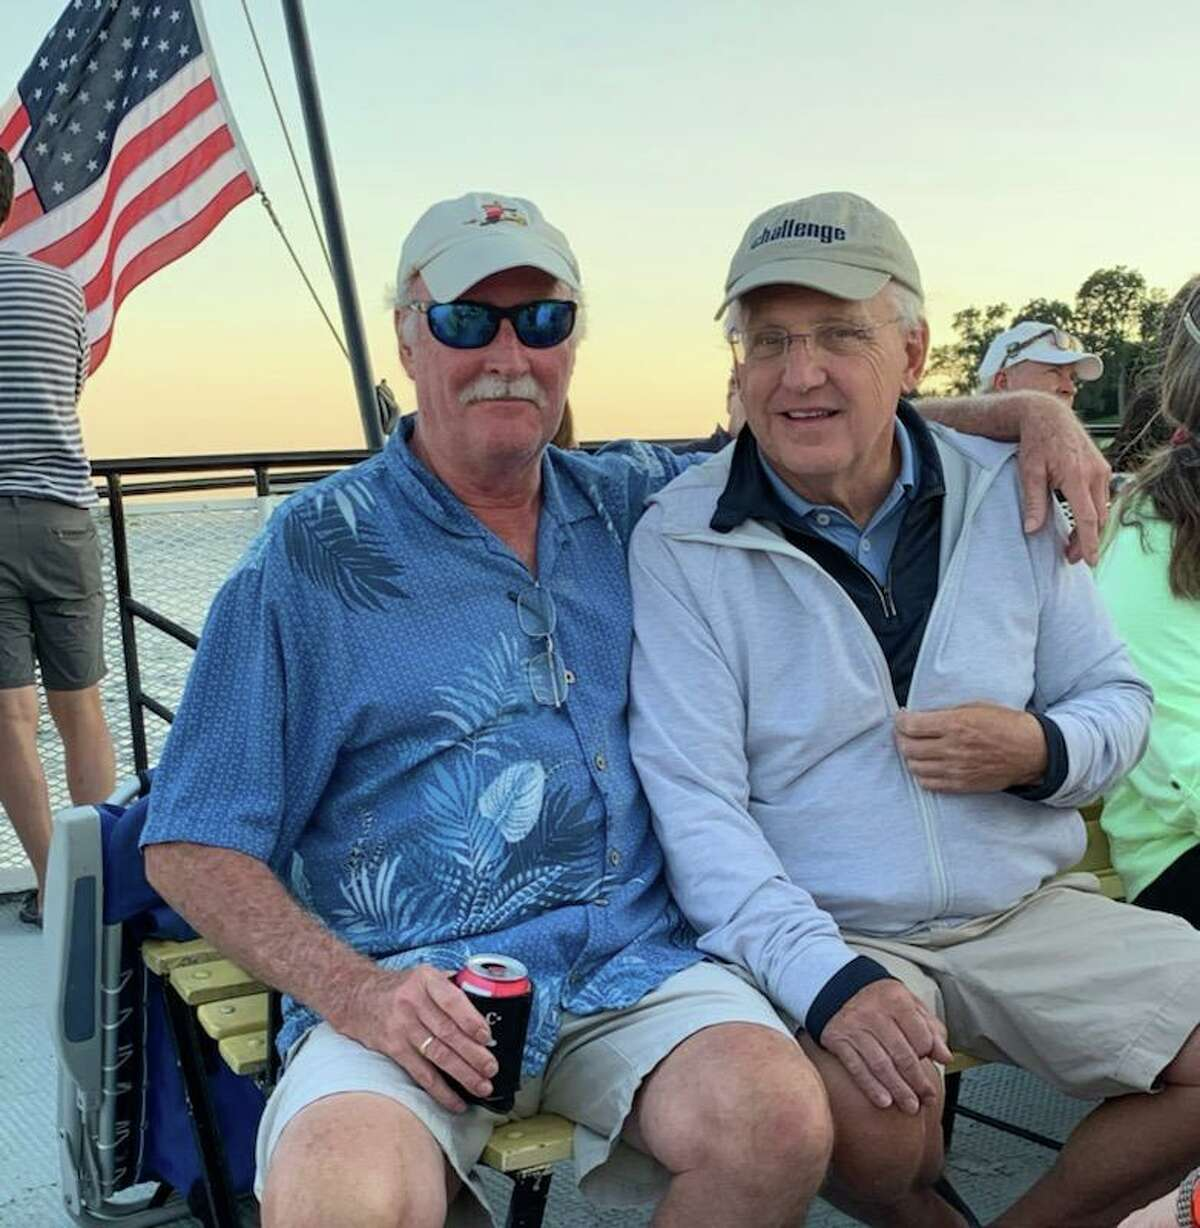 Greenwich native and resident Kevin O'Conner with Brian Curley as they take the last boat back after the traditional annual Curley Family Birthday Celebration at Island Beach last weekend.